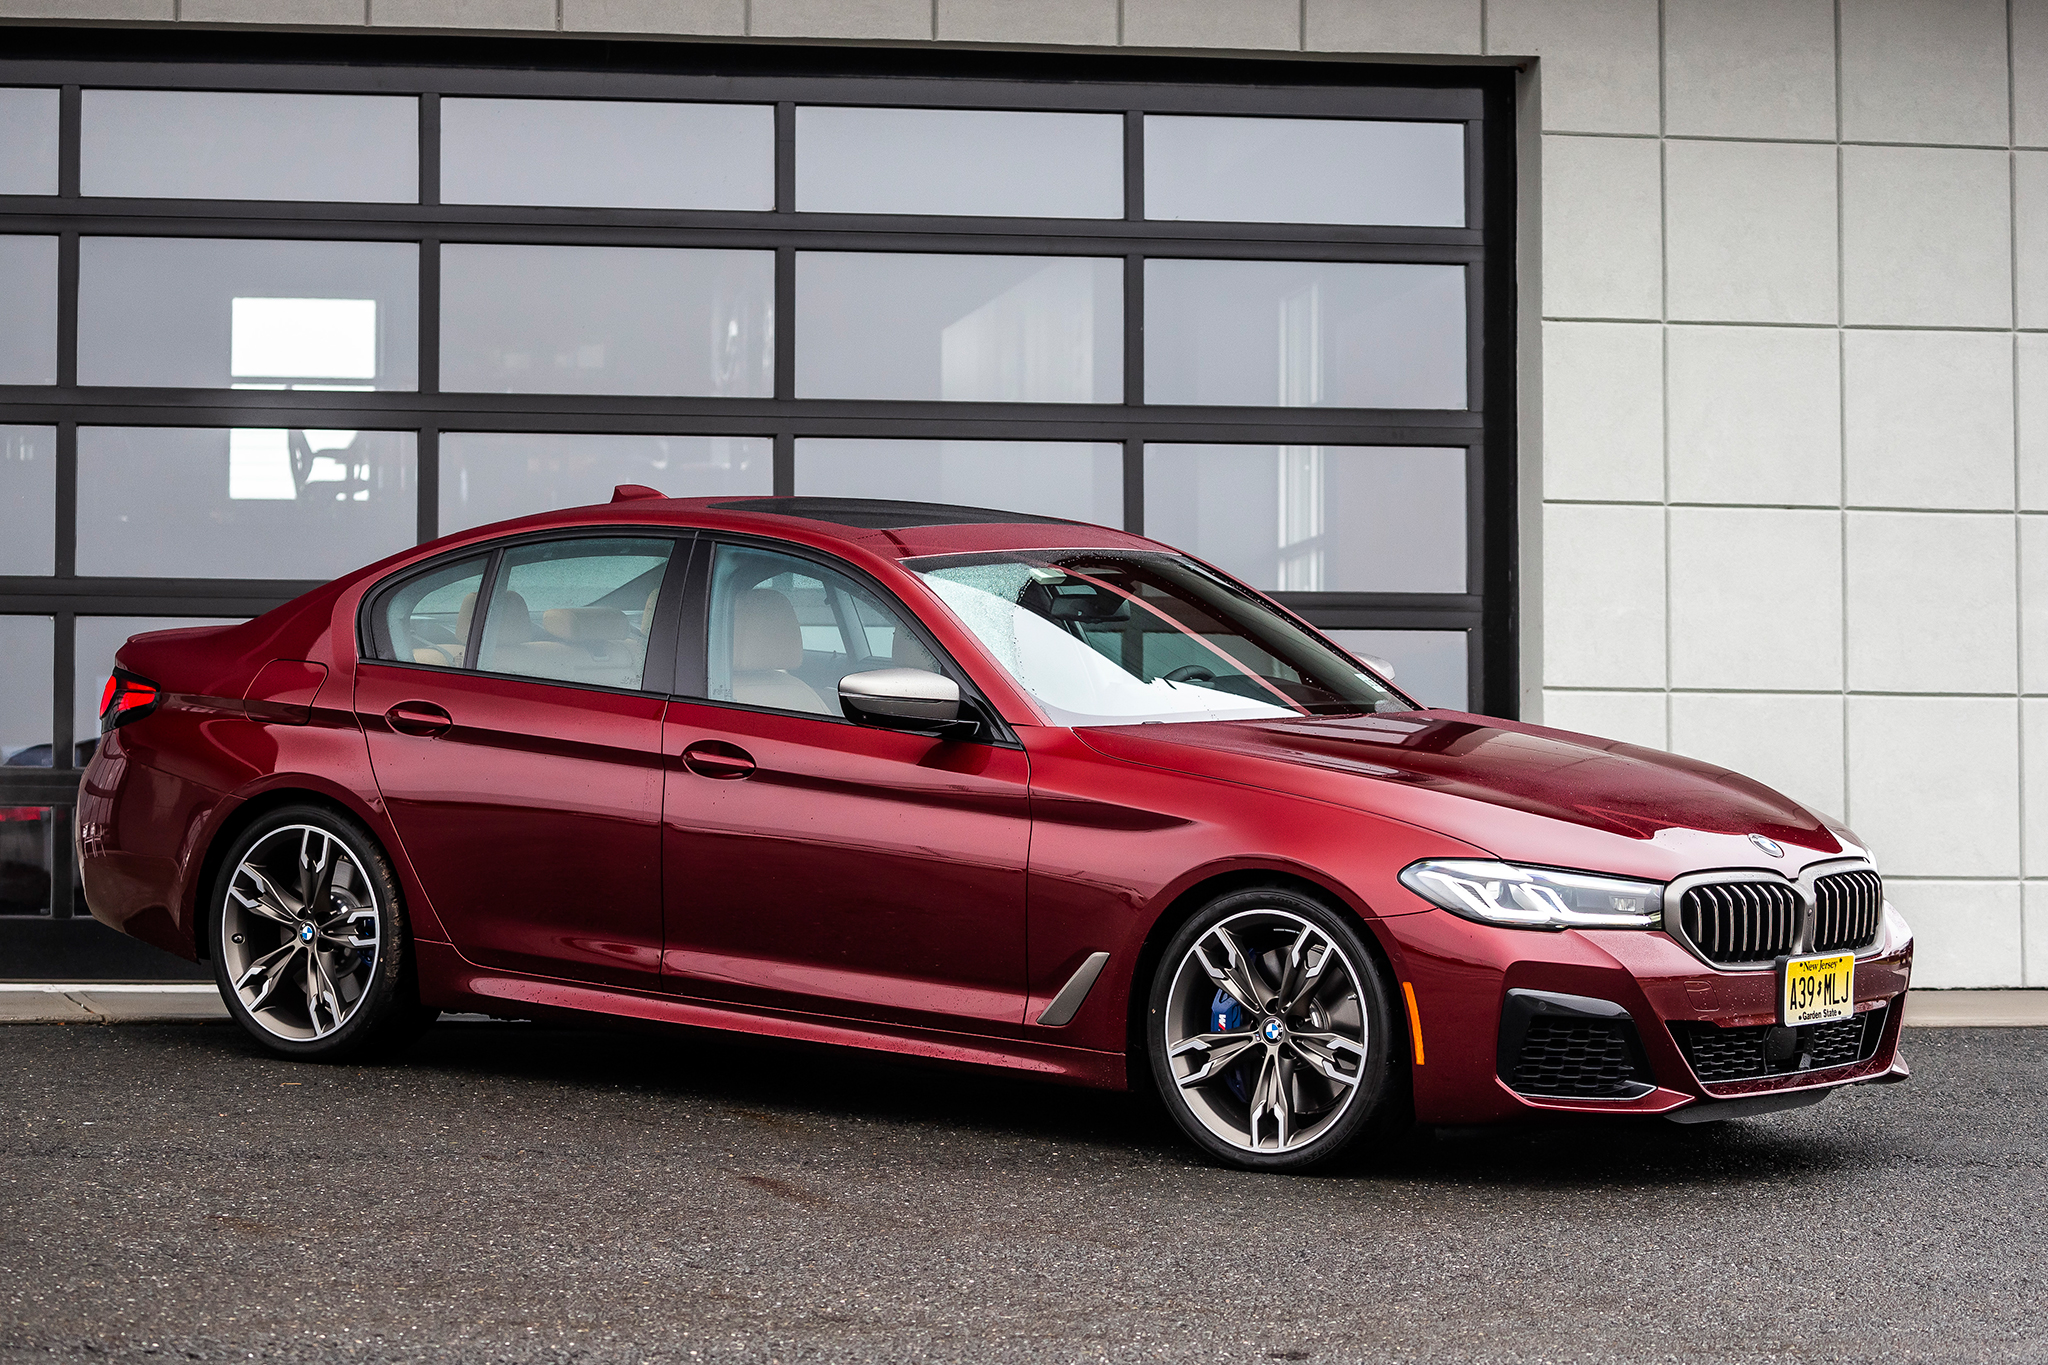 Dro For Cars Dro4cars The 2021 Bmw 5 Series U S Version Dro4cars Preview Series E2 Video